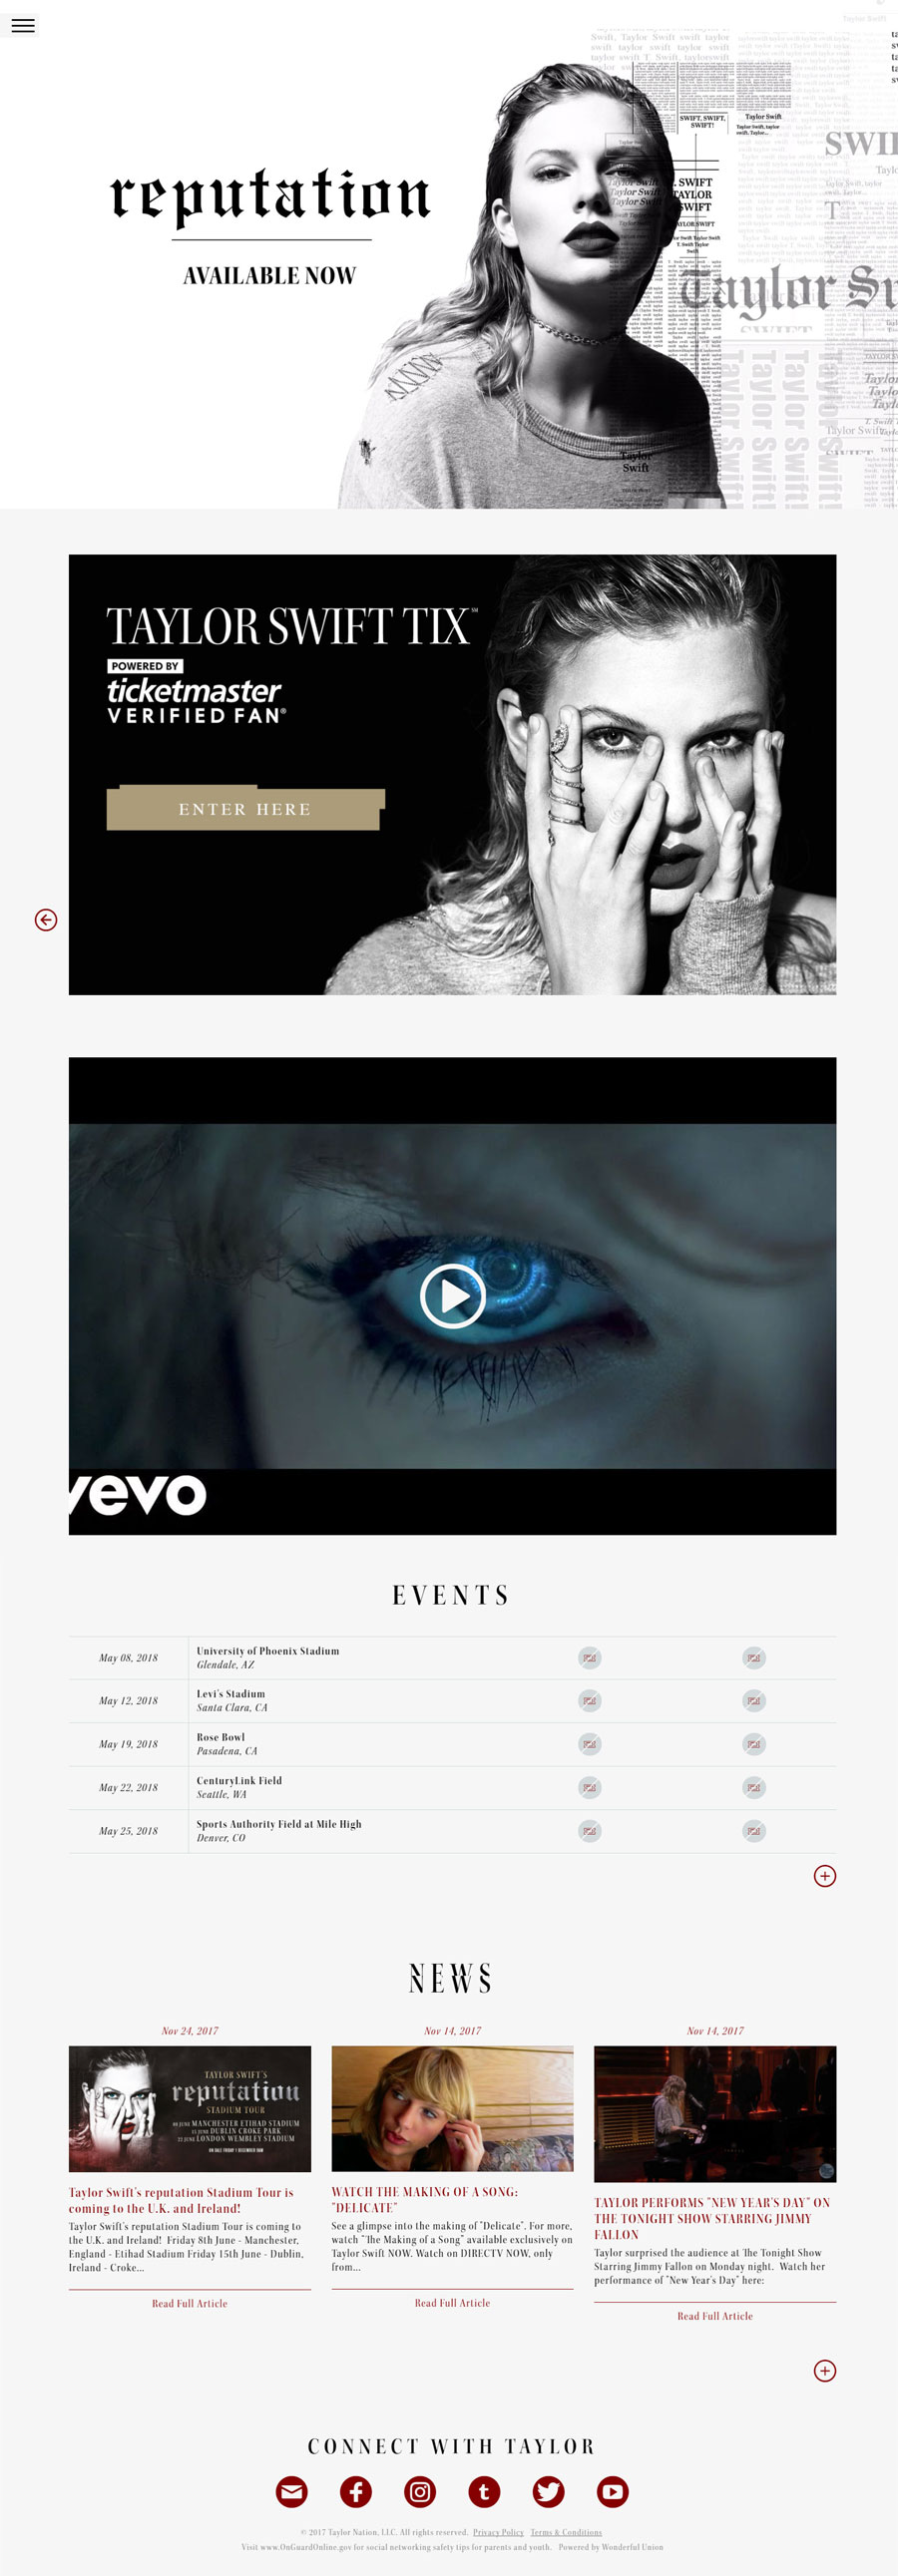 Taylor Swift American Singer Celebrity Website Design